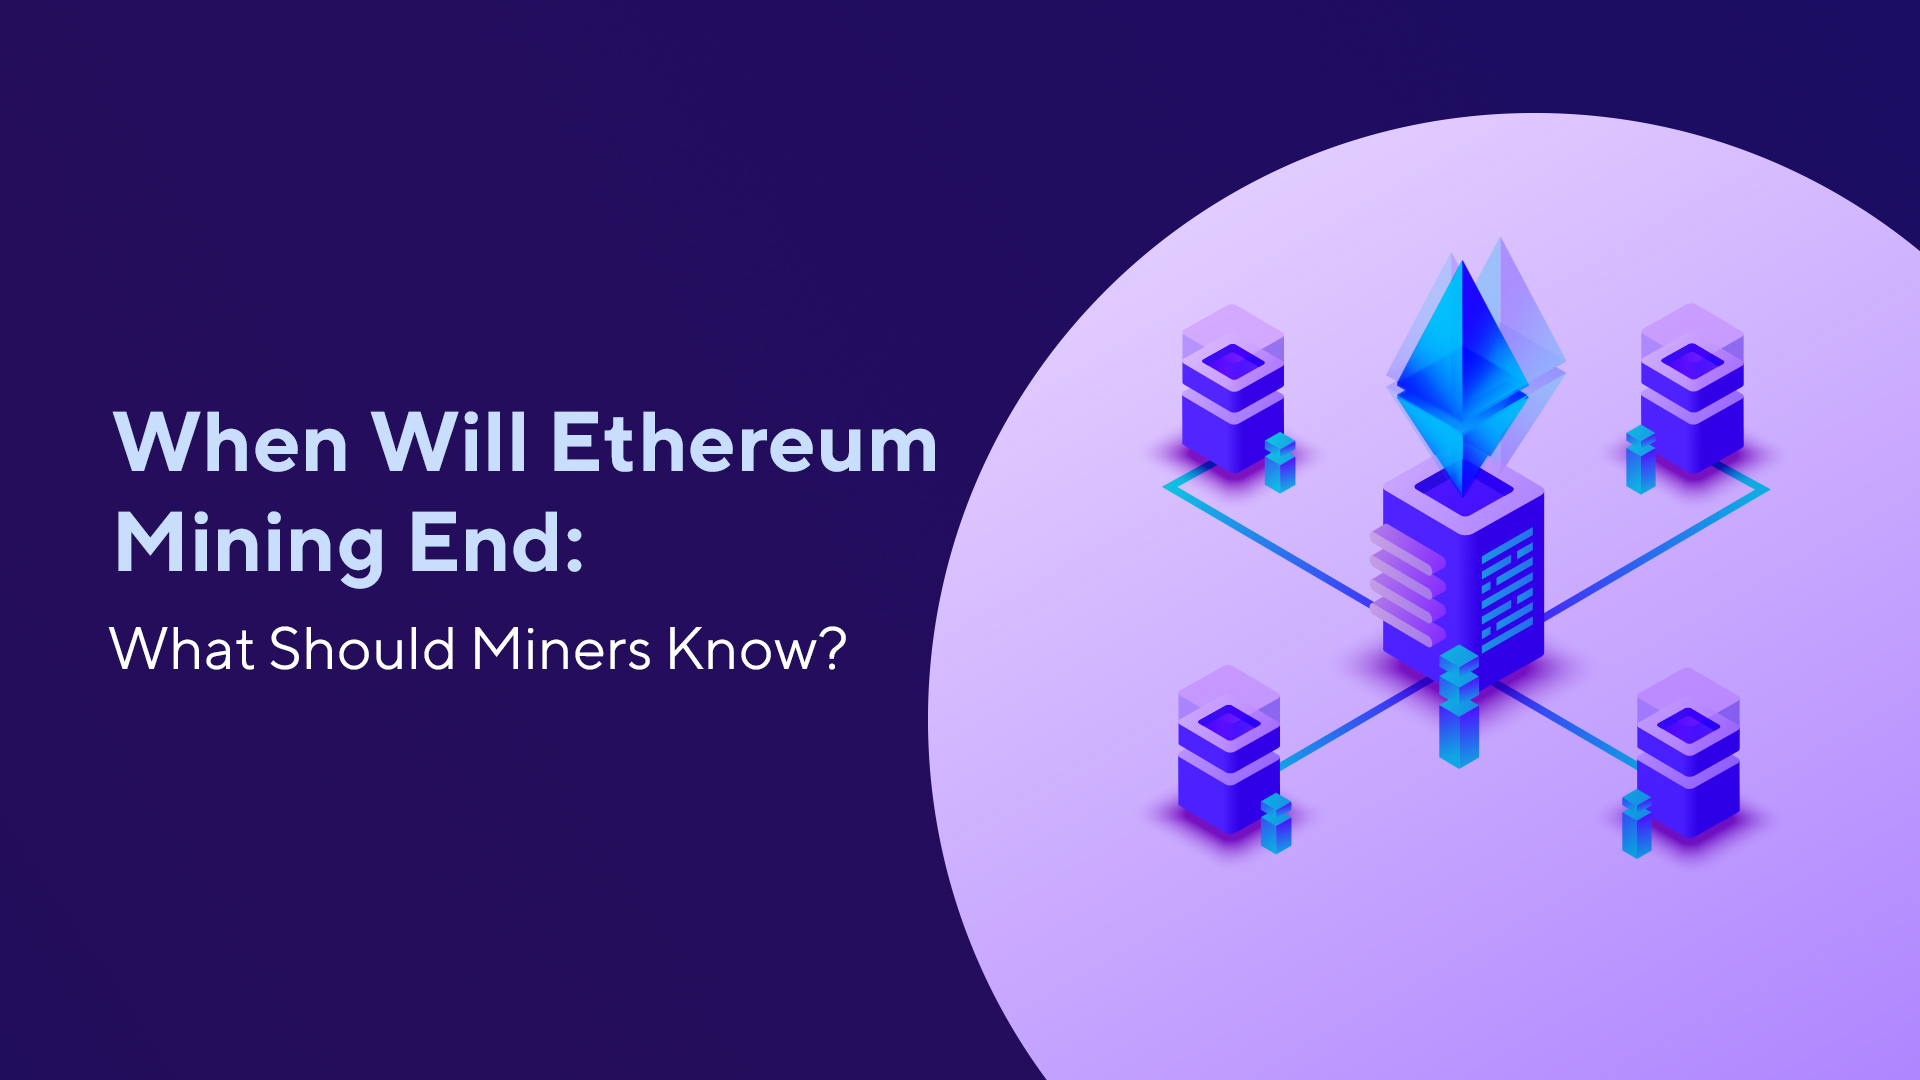 When Will Ethereum Mining End: What Should Miners Know?